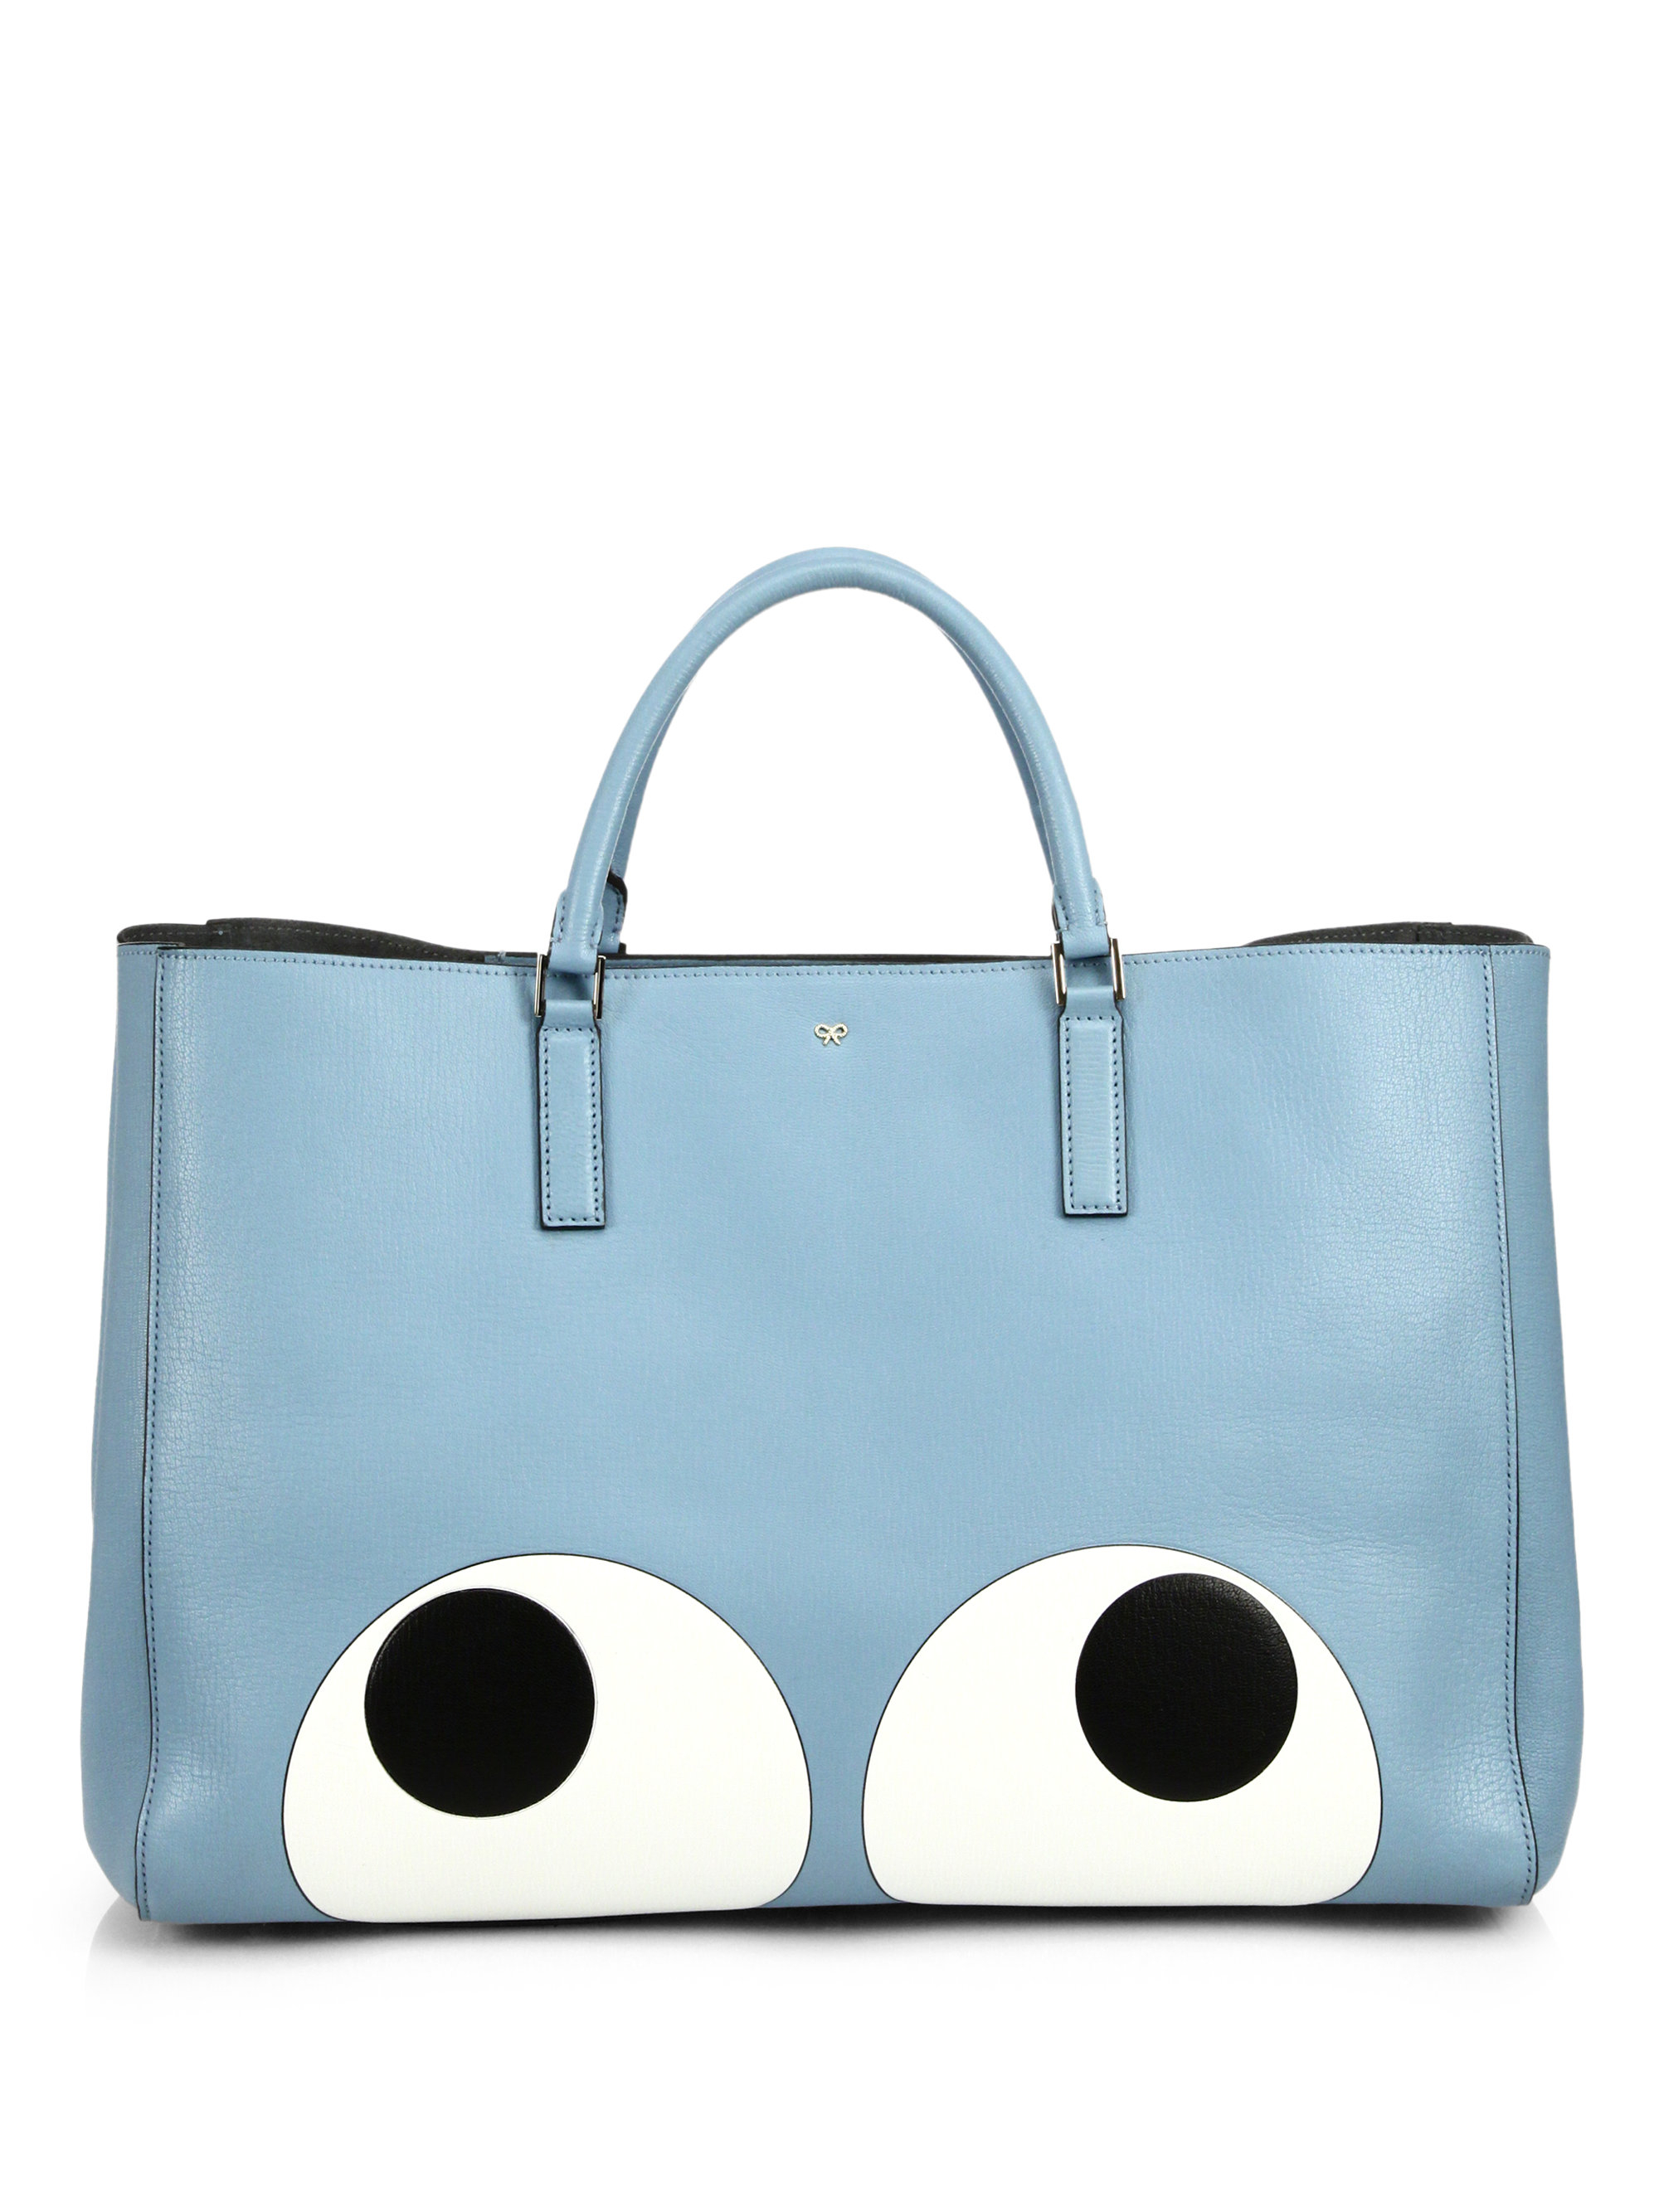 Free Shipping 100% Original small shoulder bag - Blue Anya Hindmarch Clearance How Much lfSyhbfE9